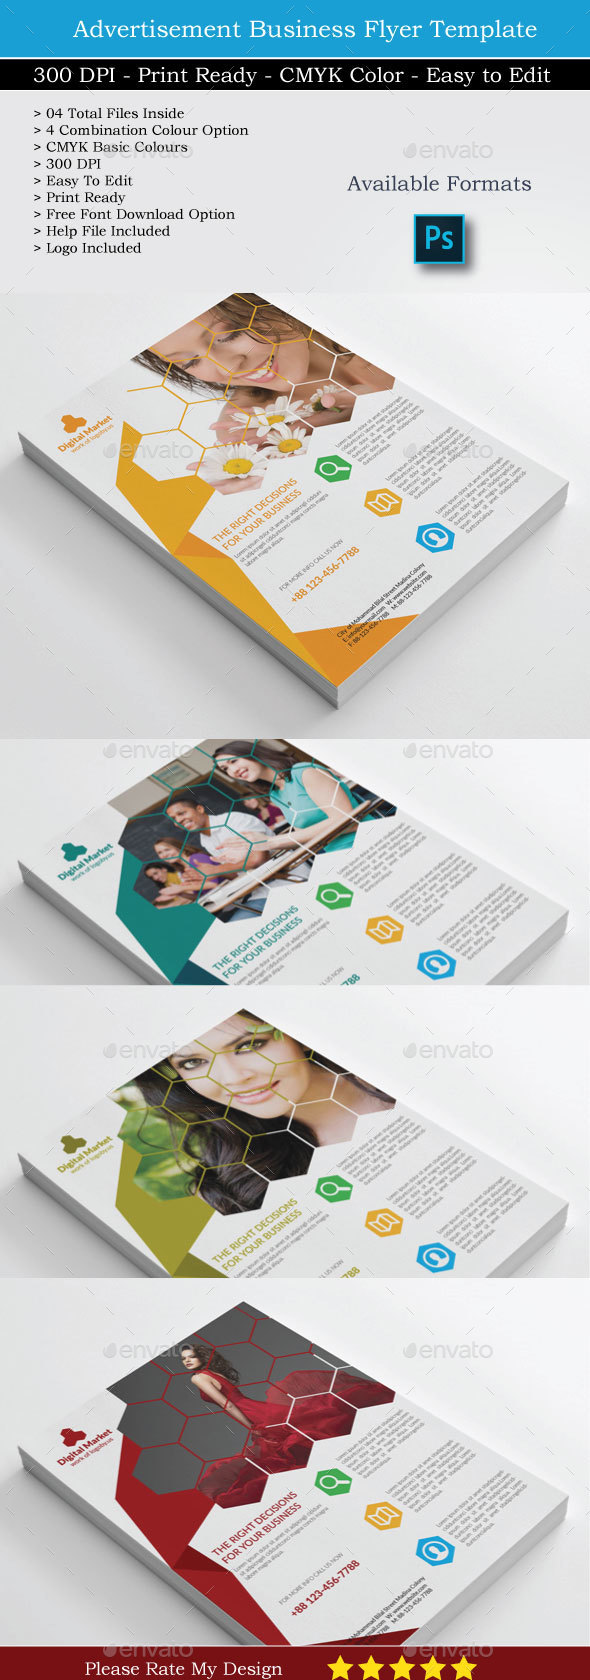 Digital Market Top Rated Corporate Flyer - Flyers Print Templates